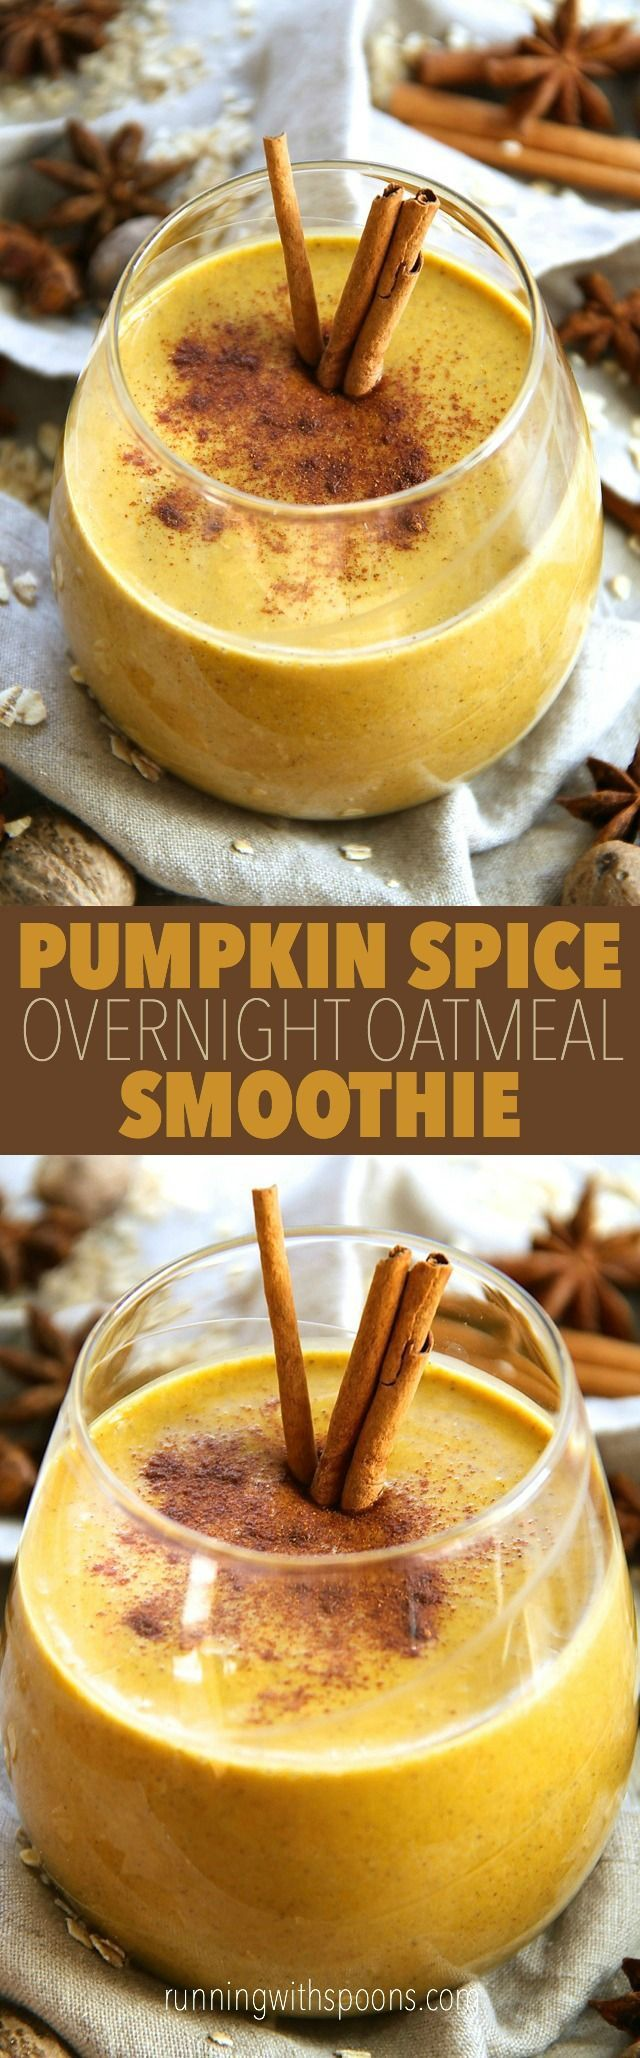 Pumpkin Spice Overnight Oatmeal Smoothie -- smooth, creamy, and sure to keep you satisfied for hours!